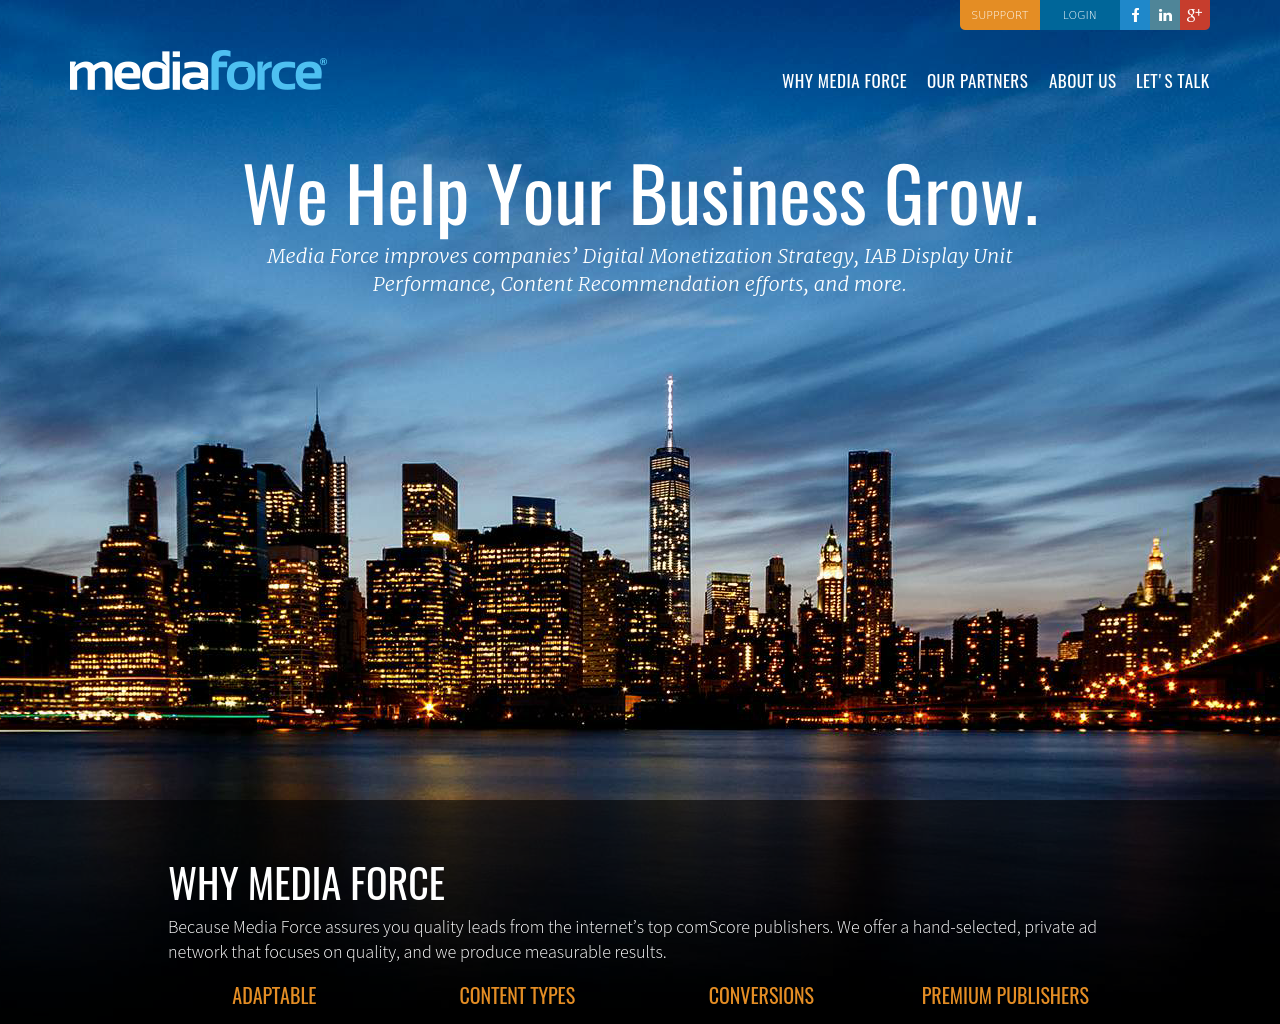 Mediaforce-Advertising-Reviews-Pricing